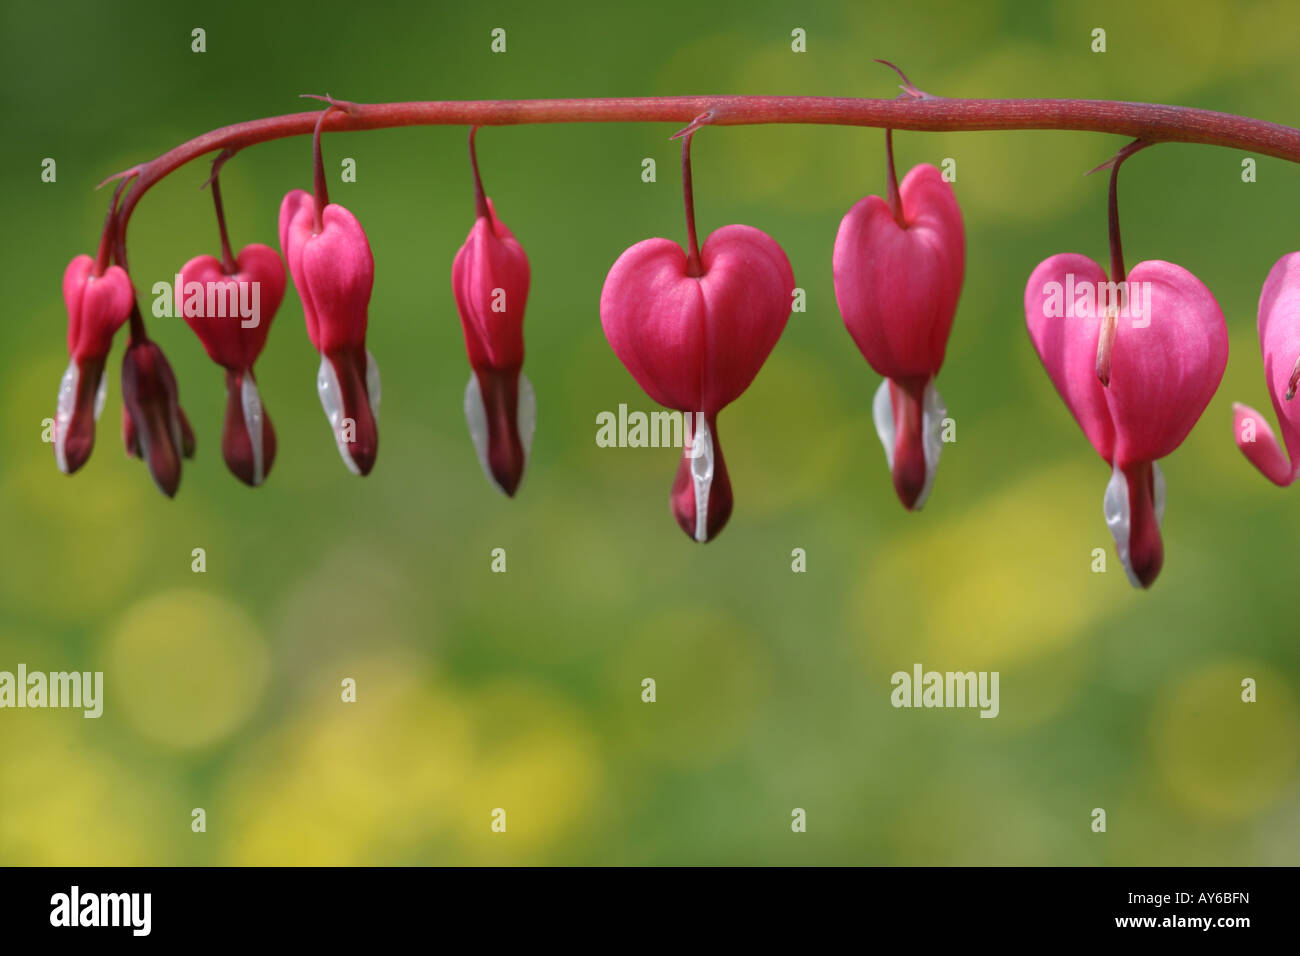 Row of pink heart shaped flowers stock photo 17007272 alamy row of pink heart shaped flowers mightylinksfo